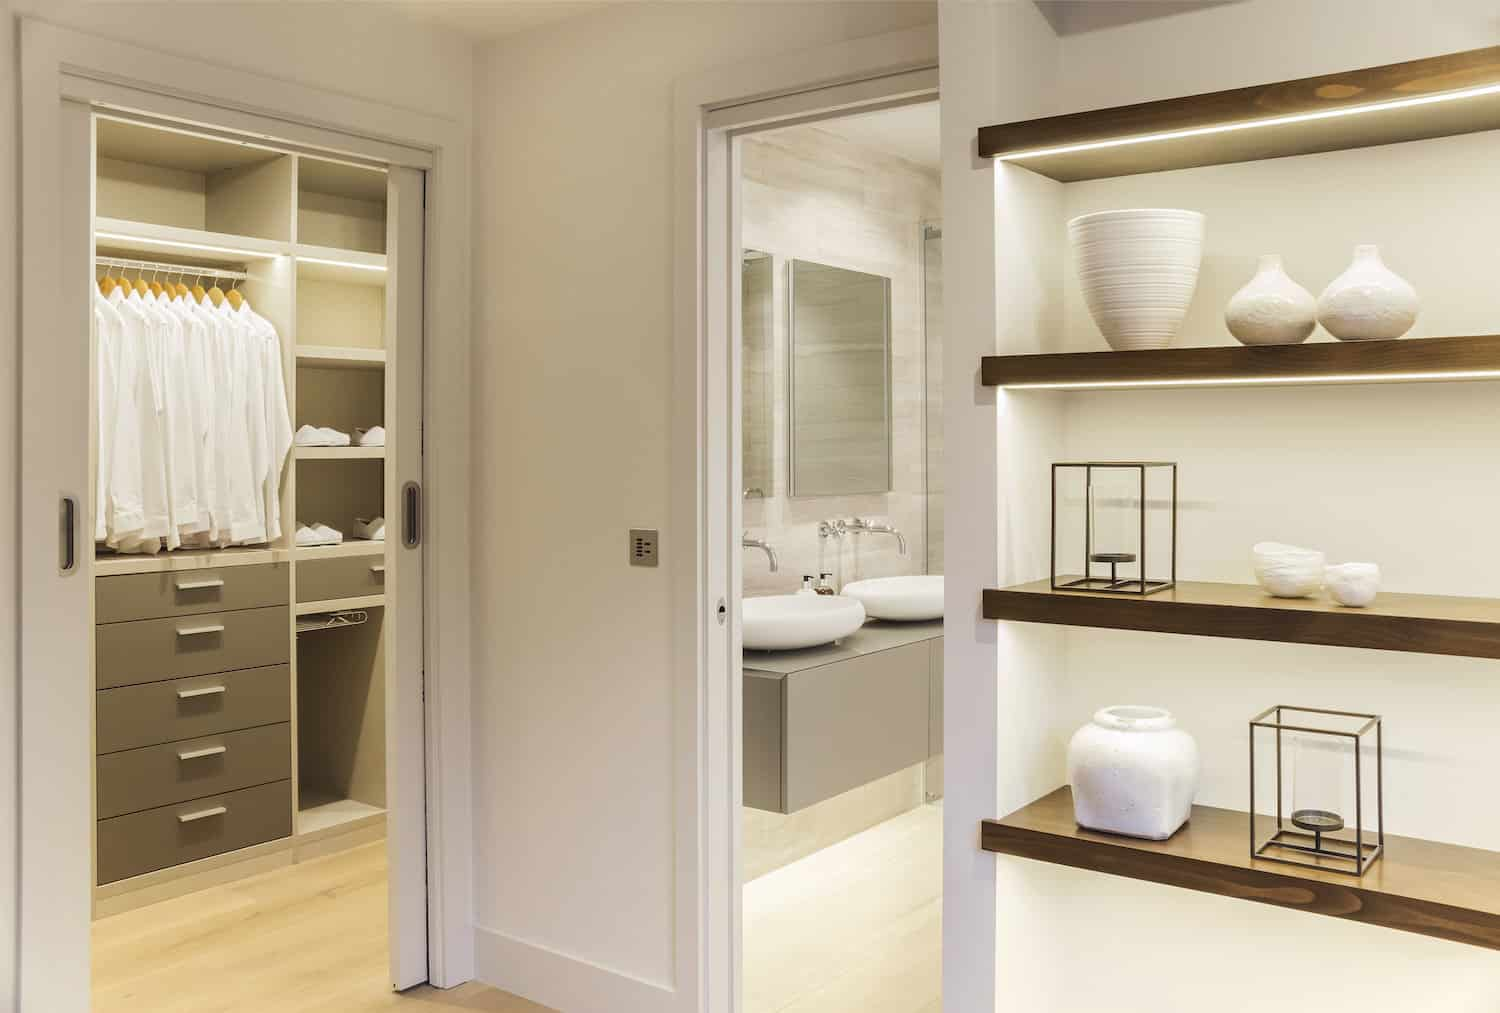 LLI Designed knocked it out of the park with the primary bedroom, walk-in closet and en suite. Here's a photo showing the walk-in closet and part of the primary bathroom viewed from the primary bedroom.